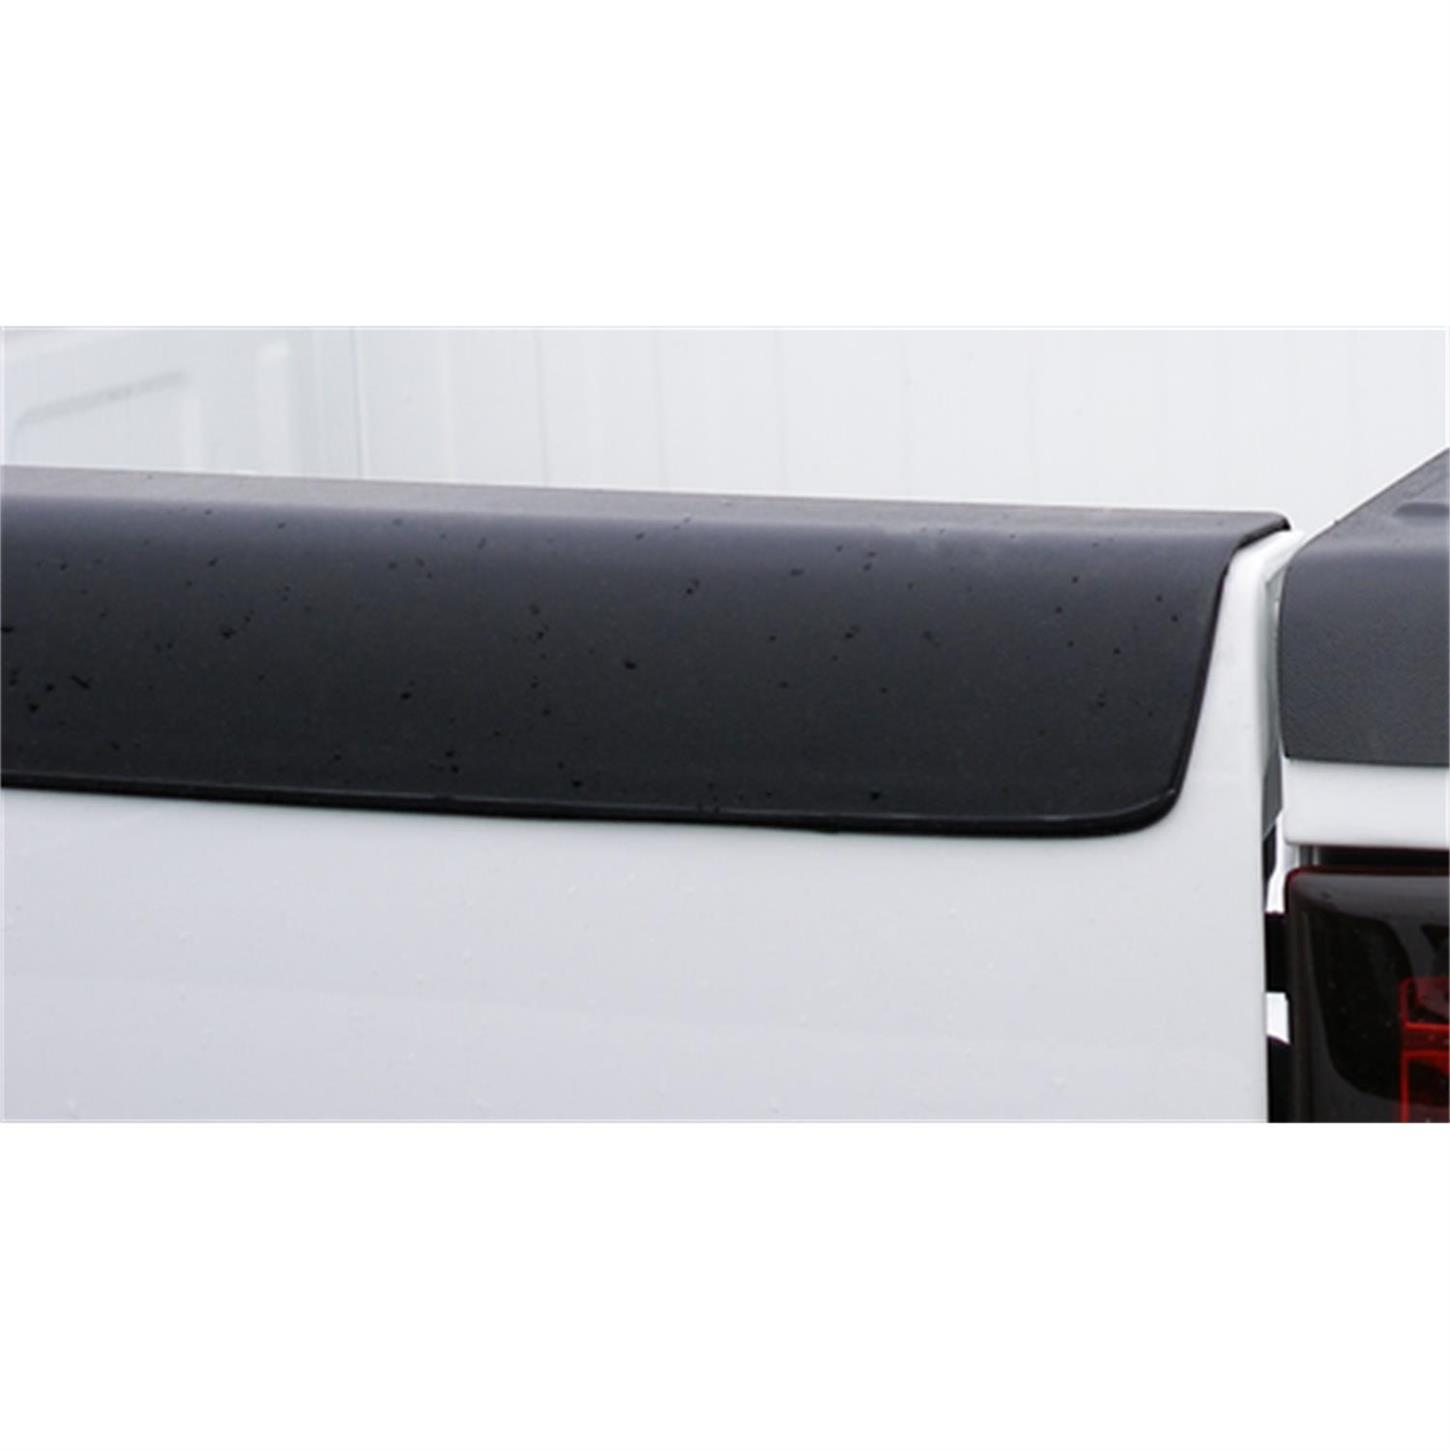 Stampede Black Tailgate Cap Smooth Finish for Dodge Ram 03-08 #BRC2005